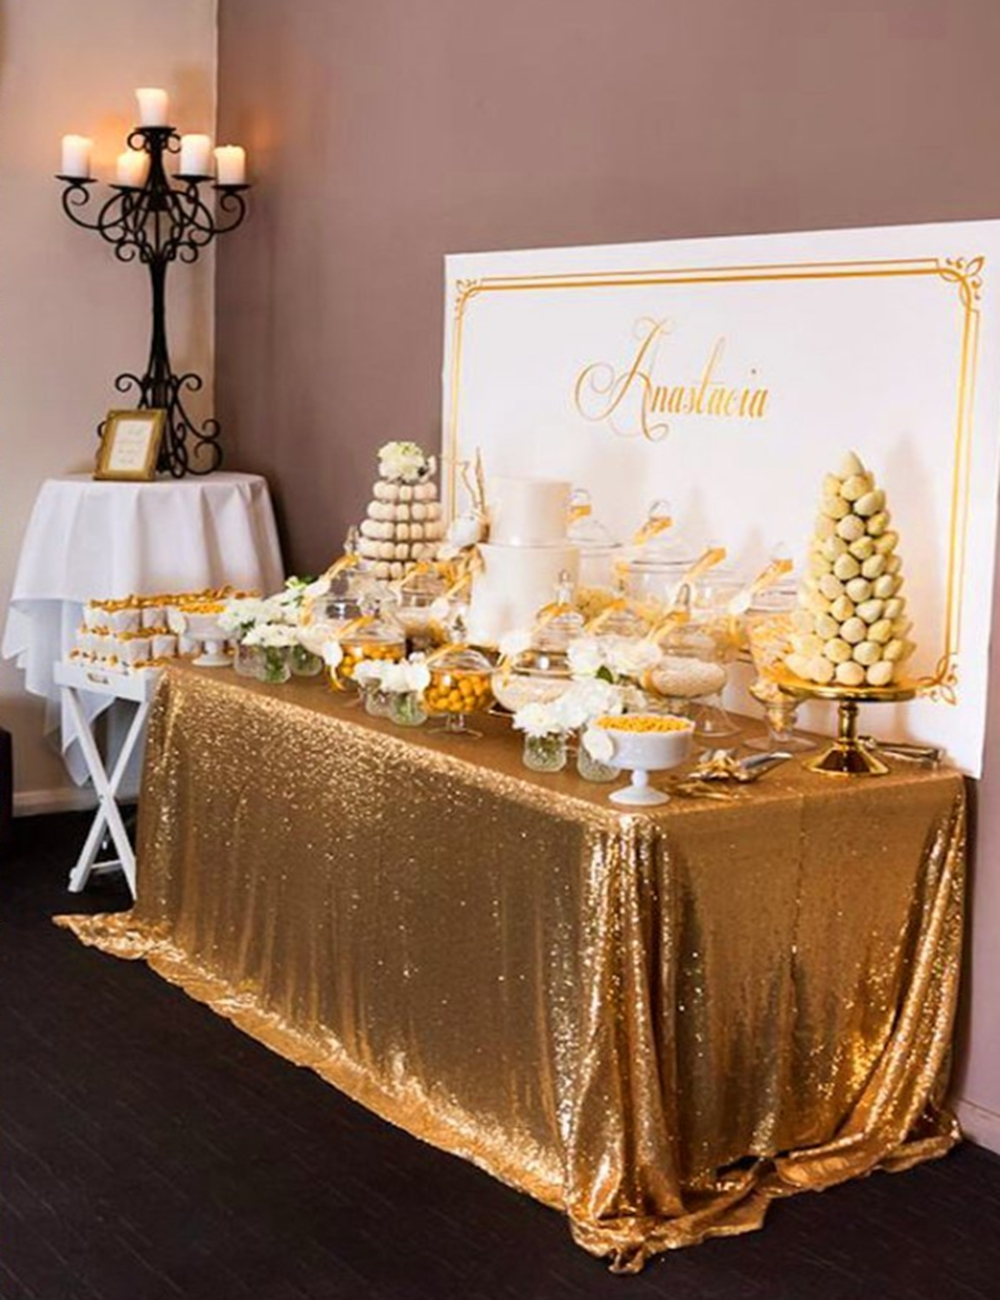 Glitter-Gold-Sequin-Tablecloth-60-Inch-By-102-Inch-Table-Cloth-Rectangular-Table-Cloth-for-Wedding